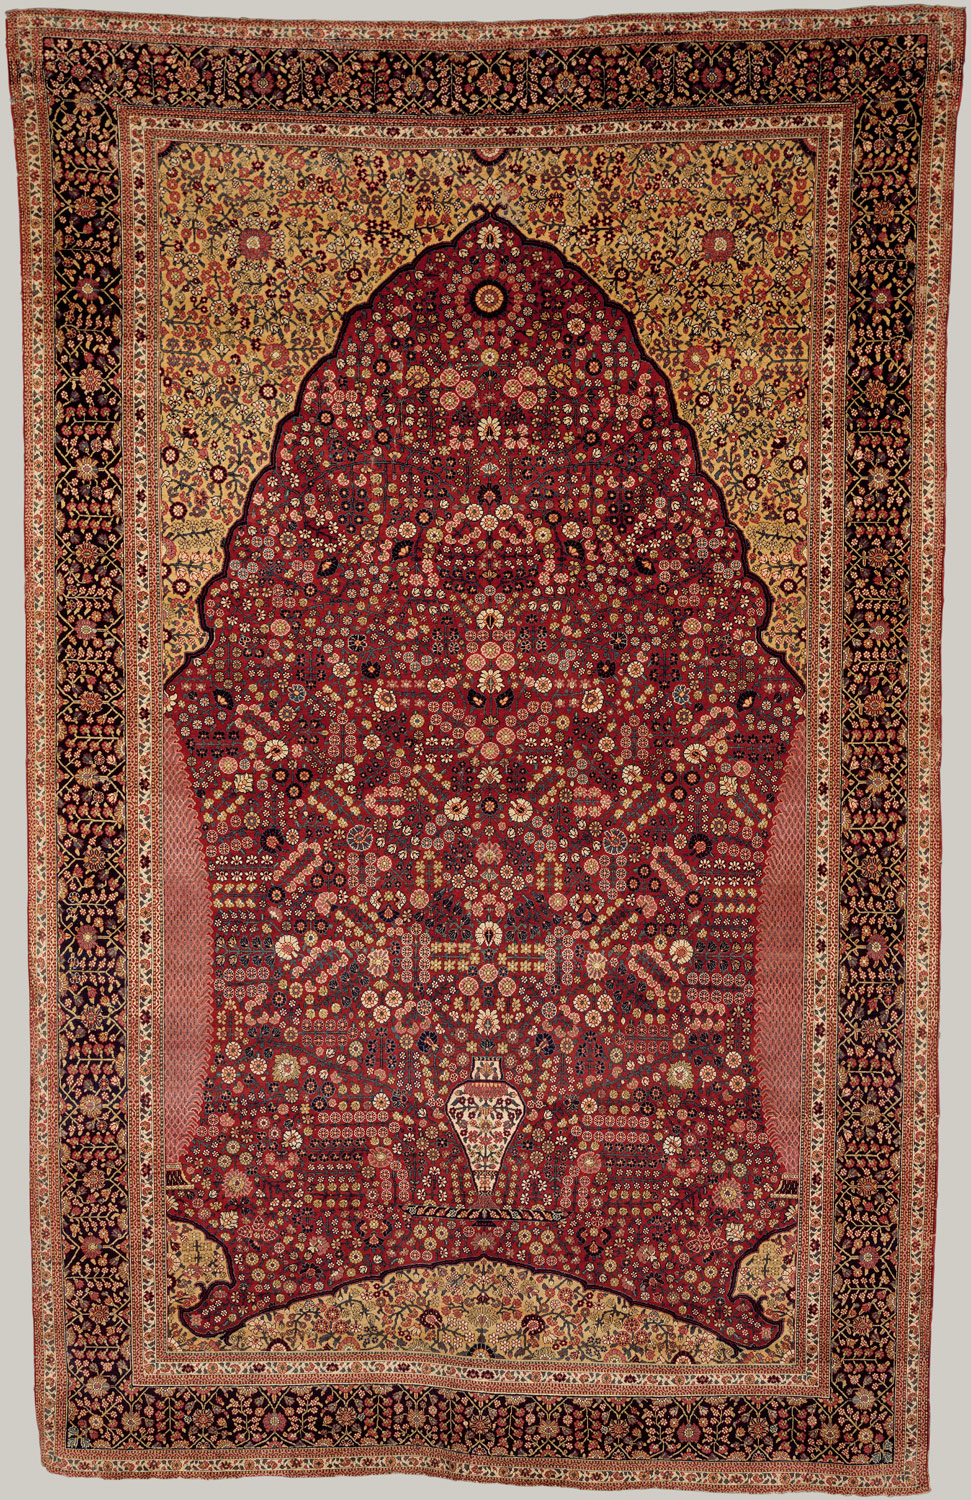 carpets from the islamic world 1600 1800 essay heilbrunn pashmina carpet gateway and millefleur pattern